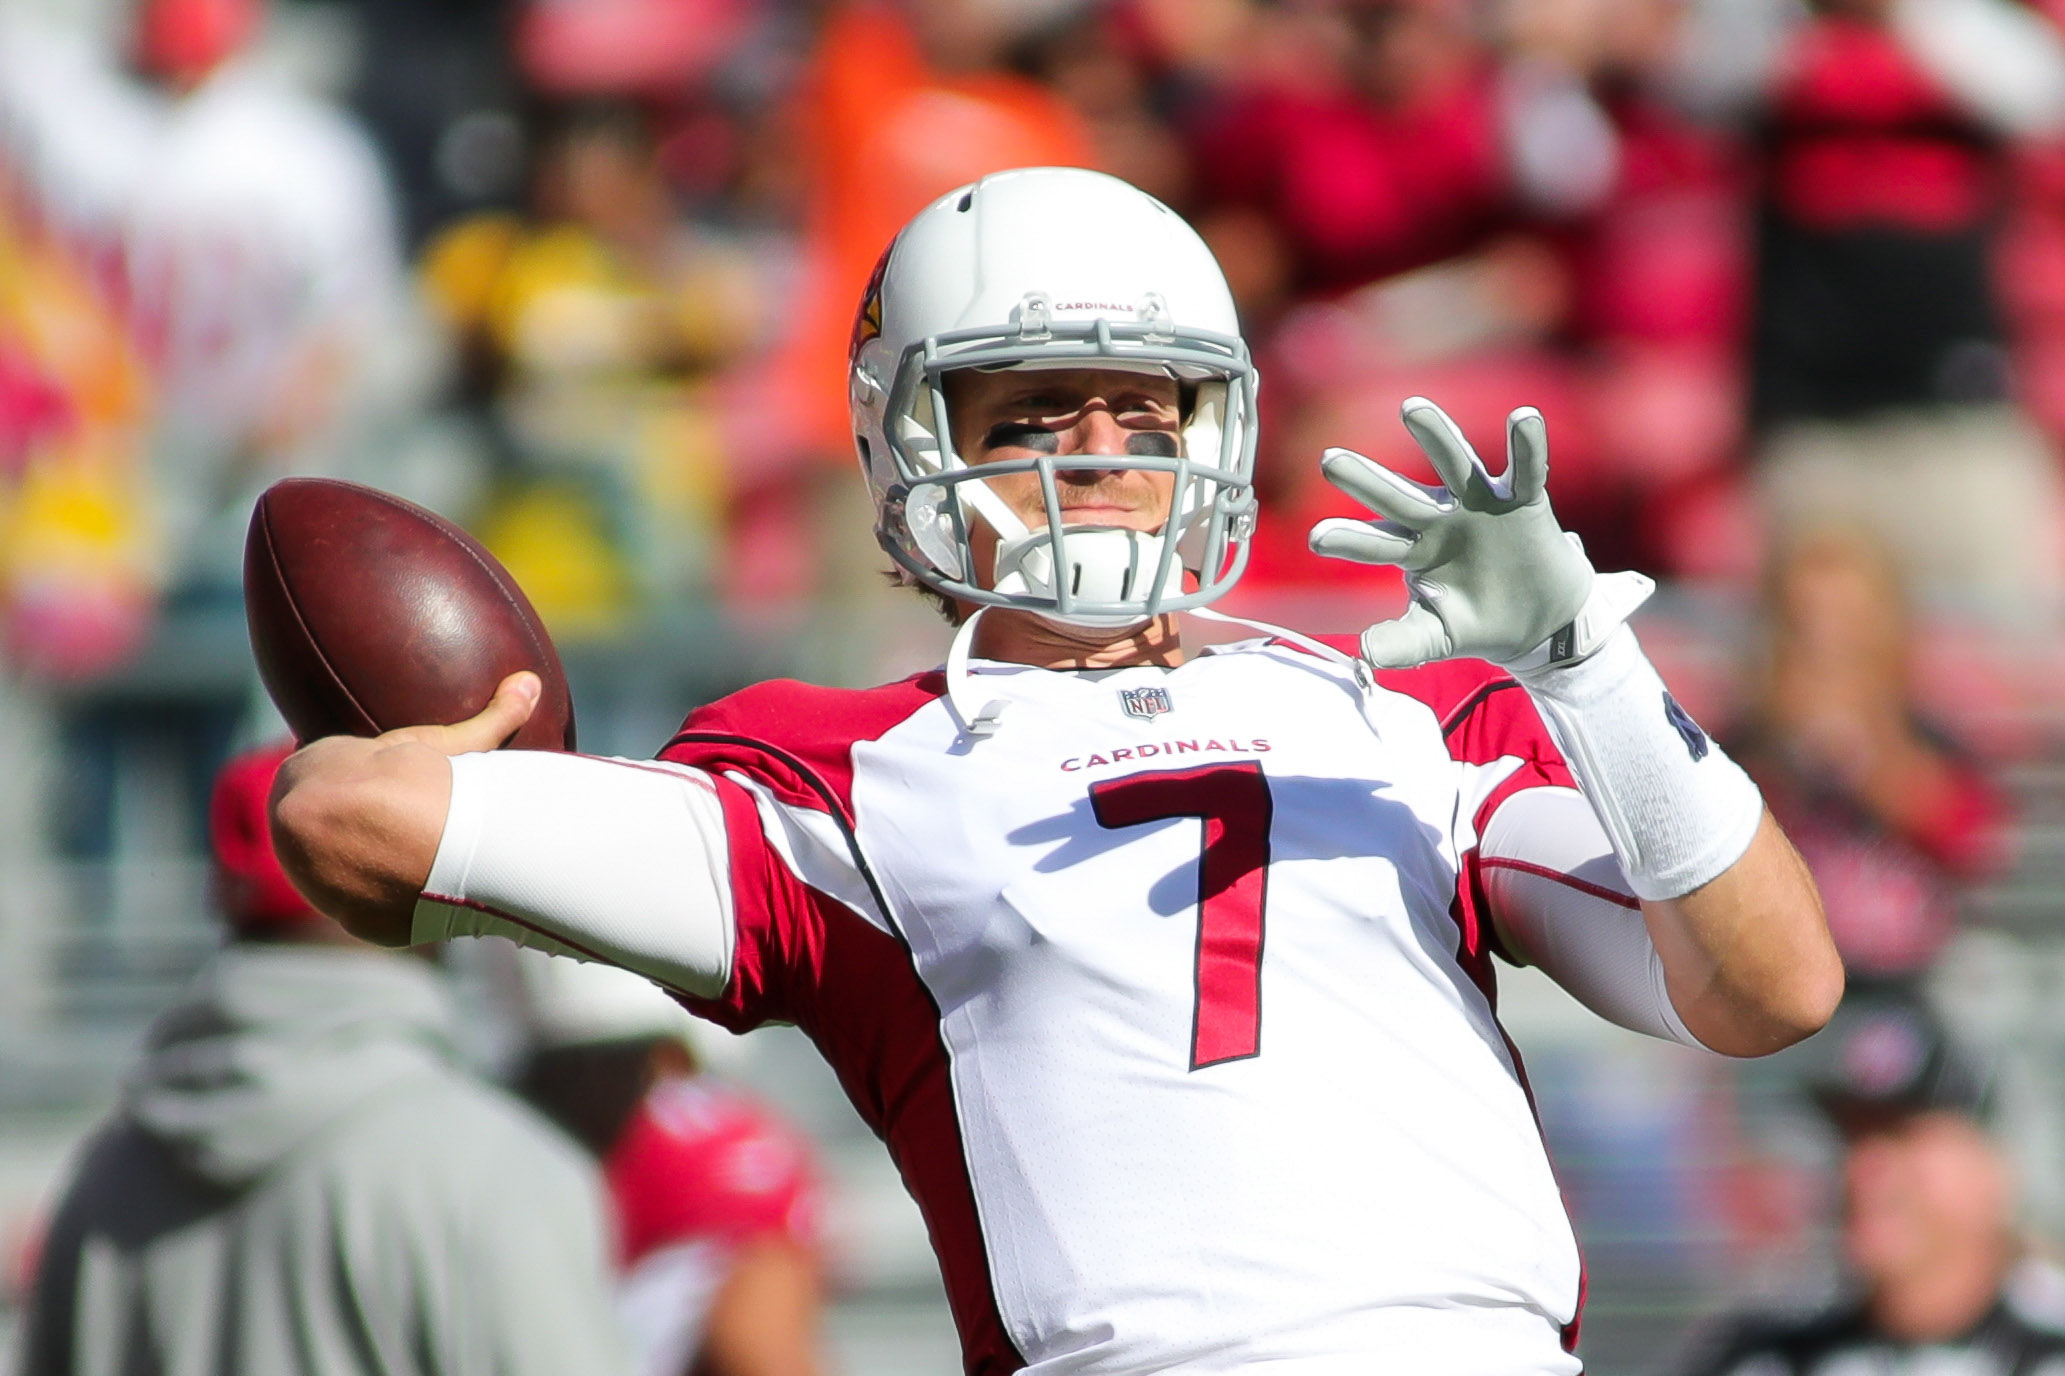 Arians: Cardinals' Blaine Gabbert will continue to start at QB